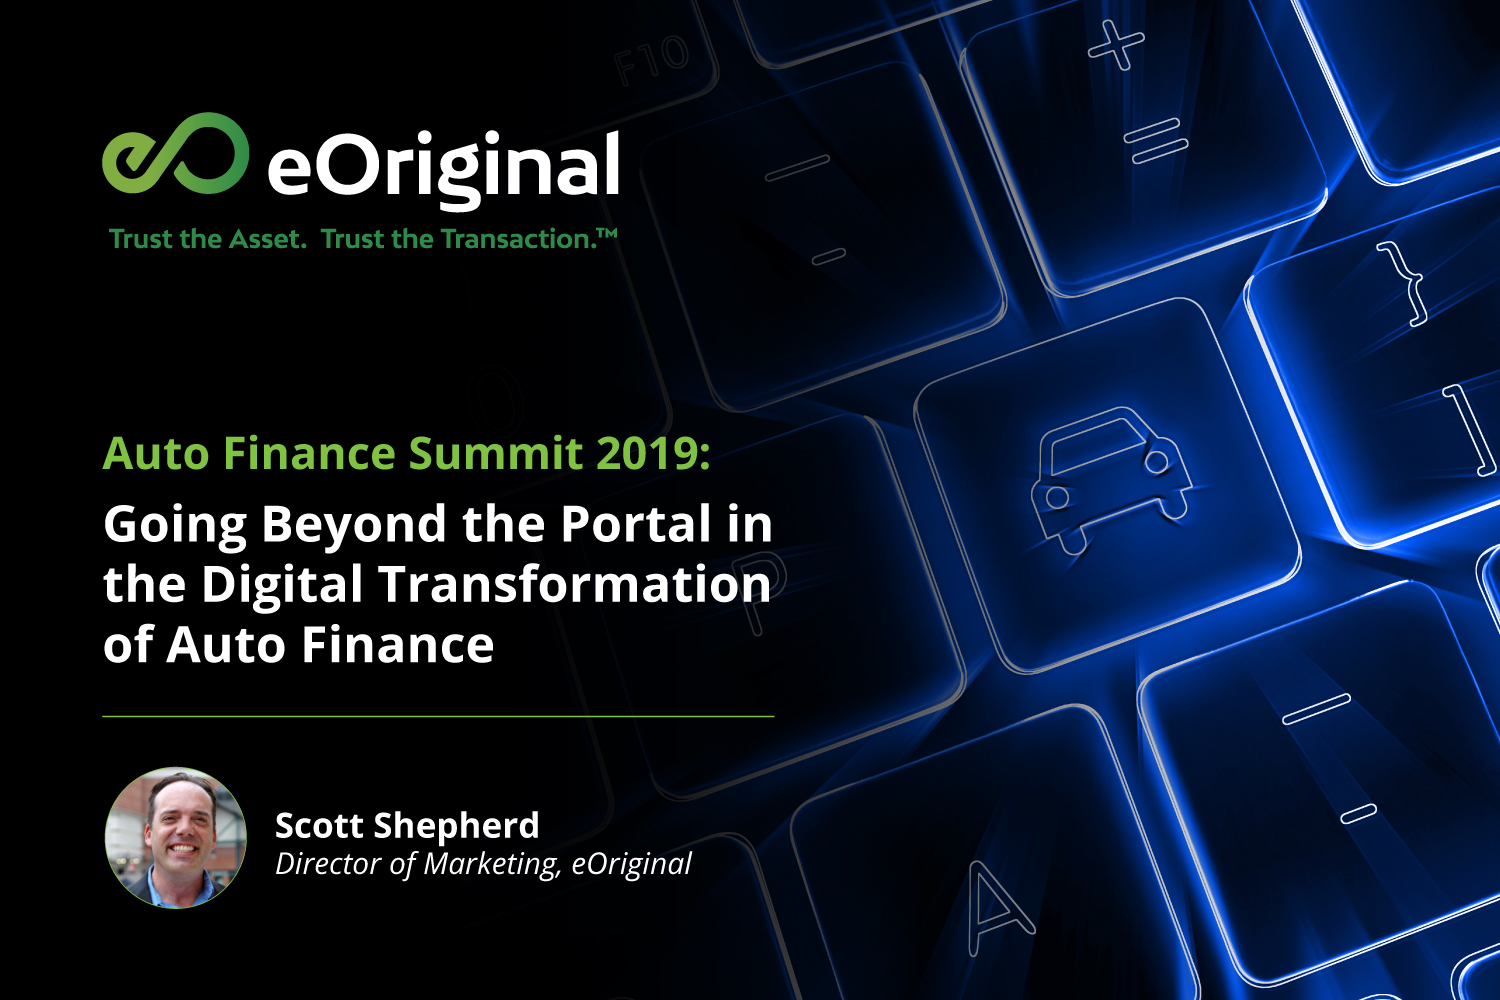 Going Beyond the Portal in the Digital Transformation of Auto Finance